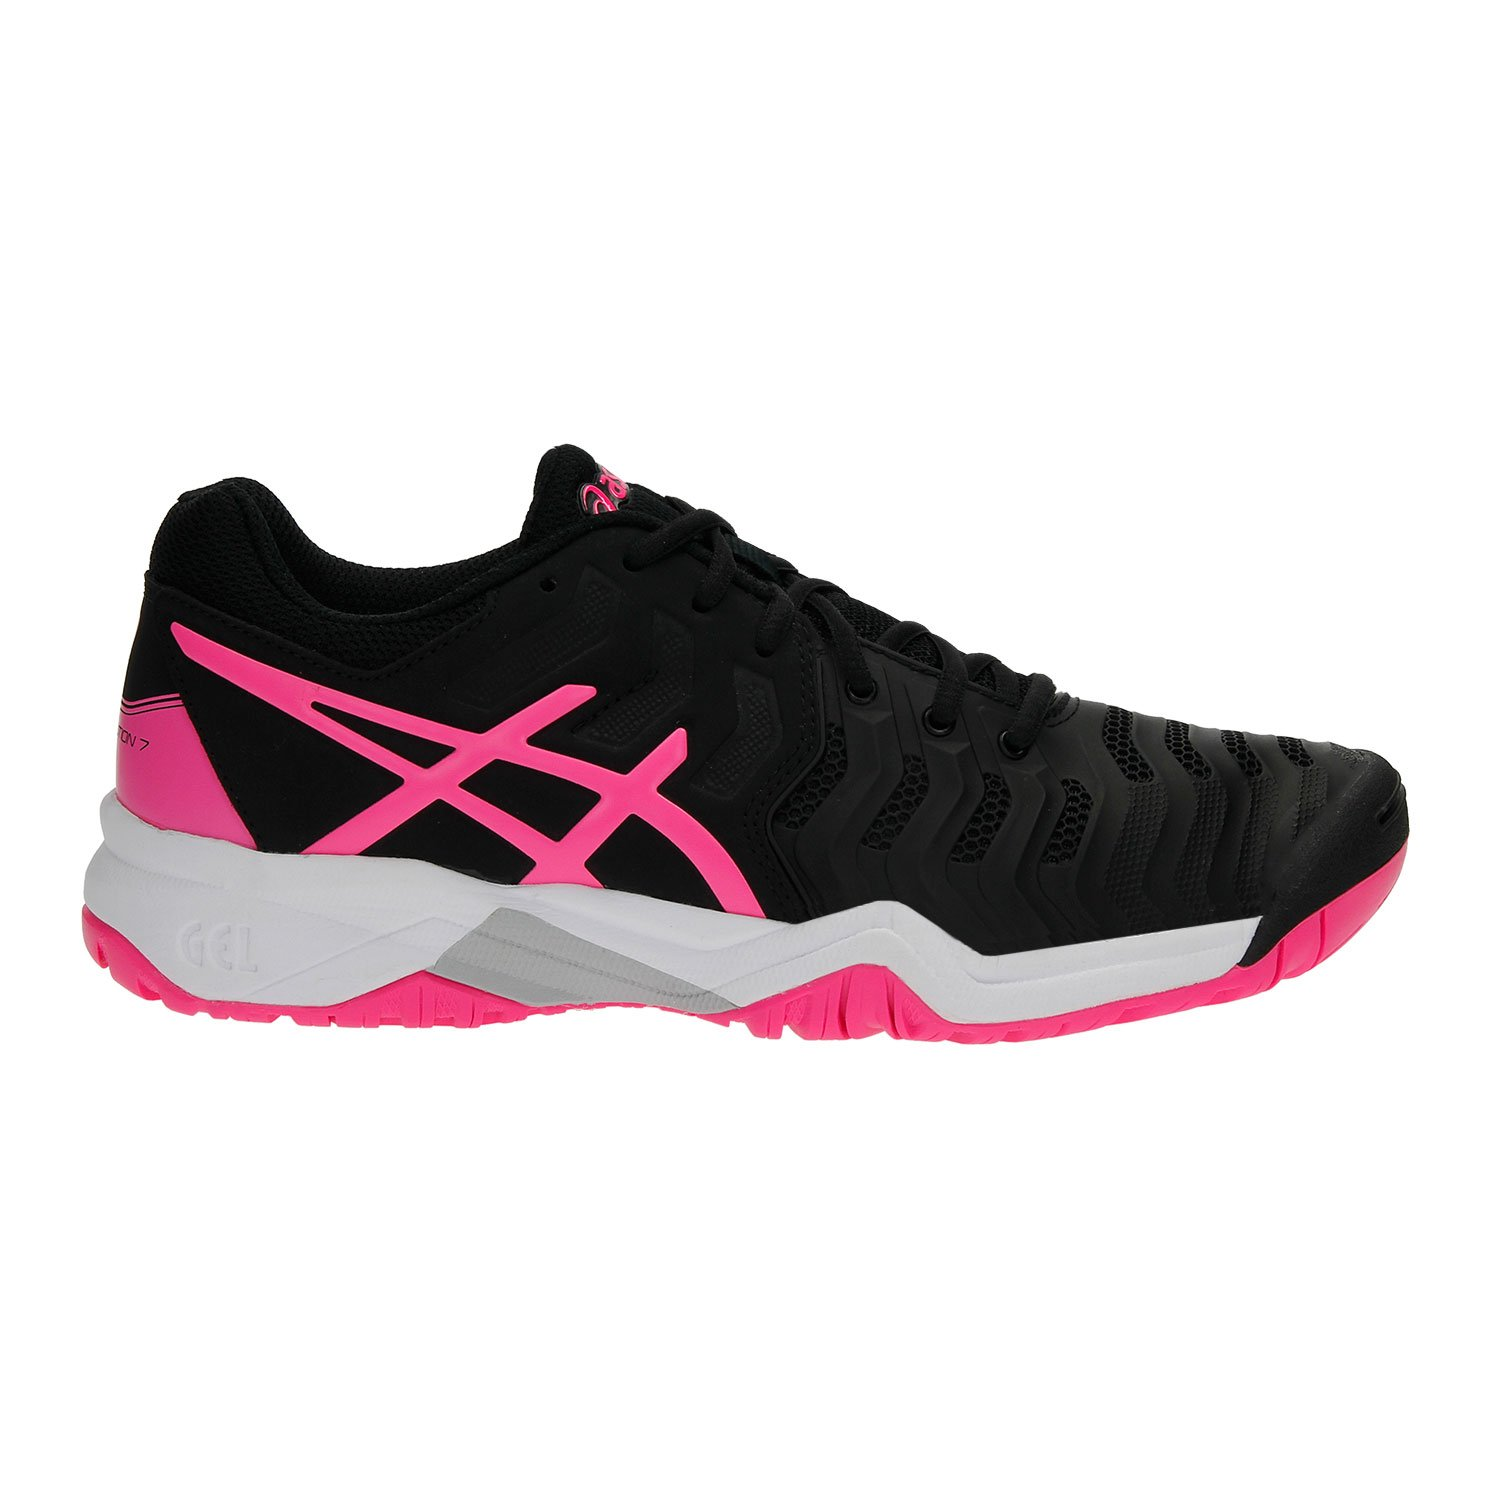 new arrival 4ccef 26171 Galleon - ASICS Kids  Gel-Resolution 7 GS Tennis Shoe, Black Hot  Pink Silver (7 US)